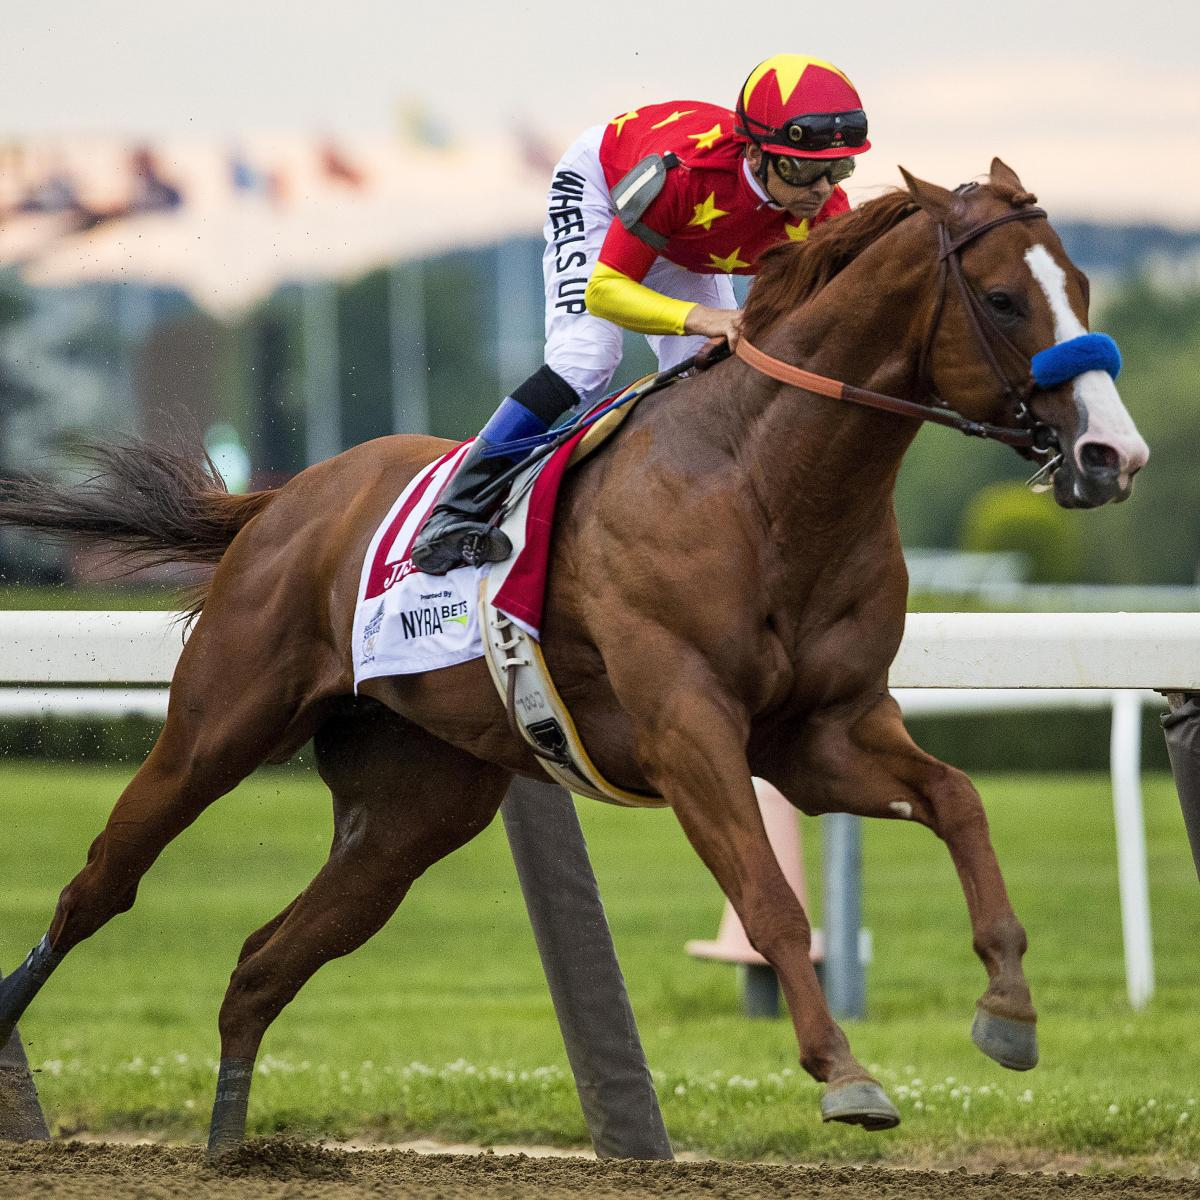 Report: Justify's Breeding Rights Are Record $75M After Winning Triple Crown